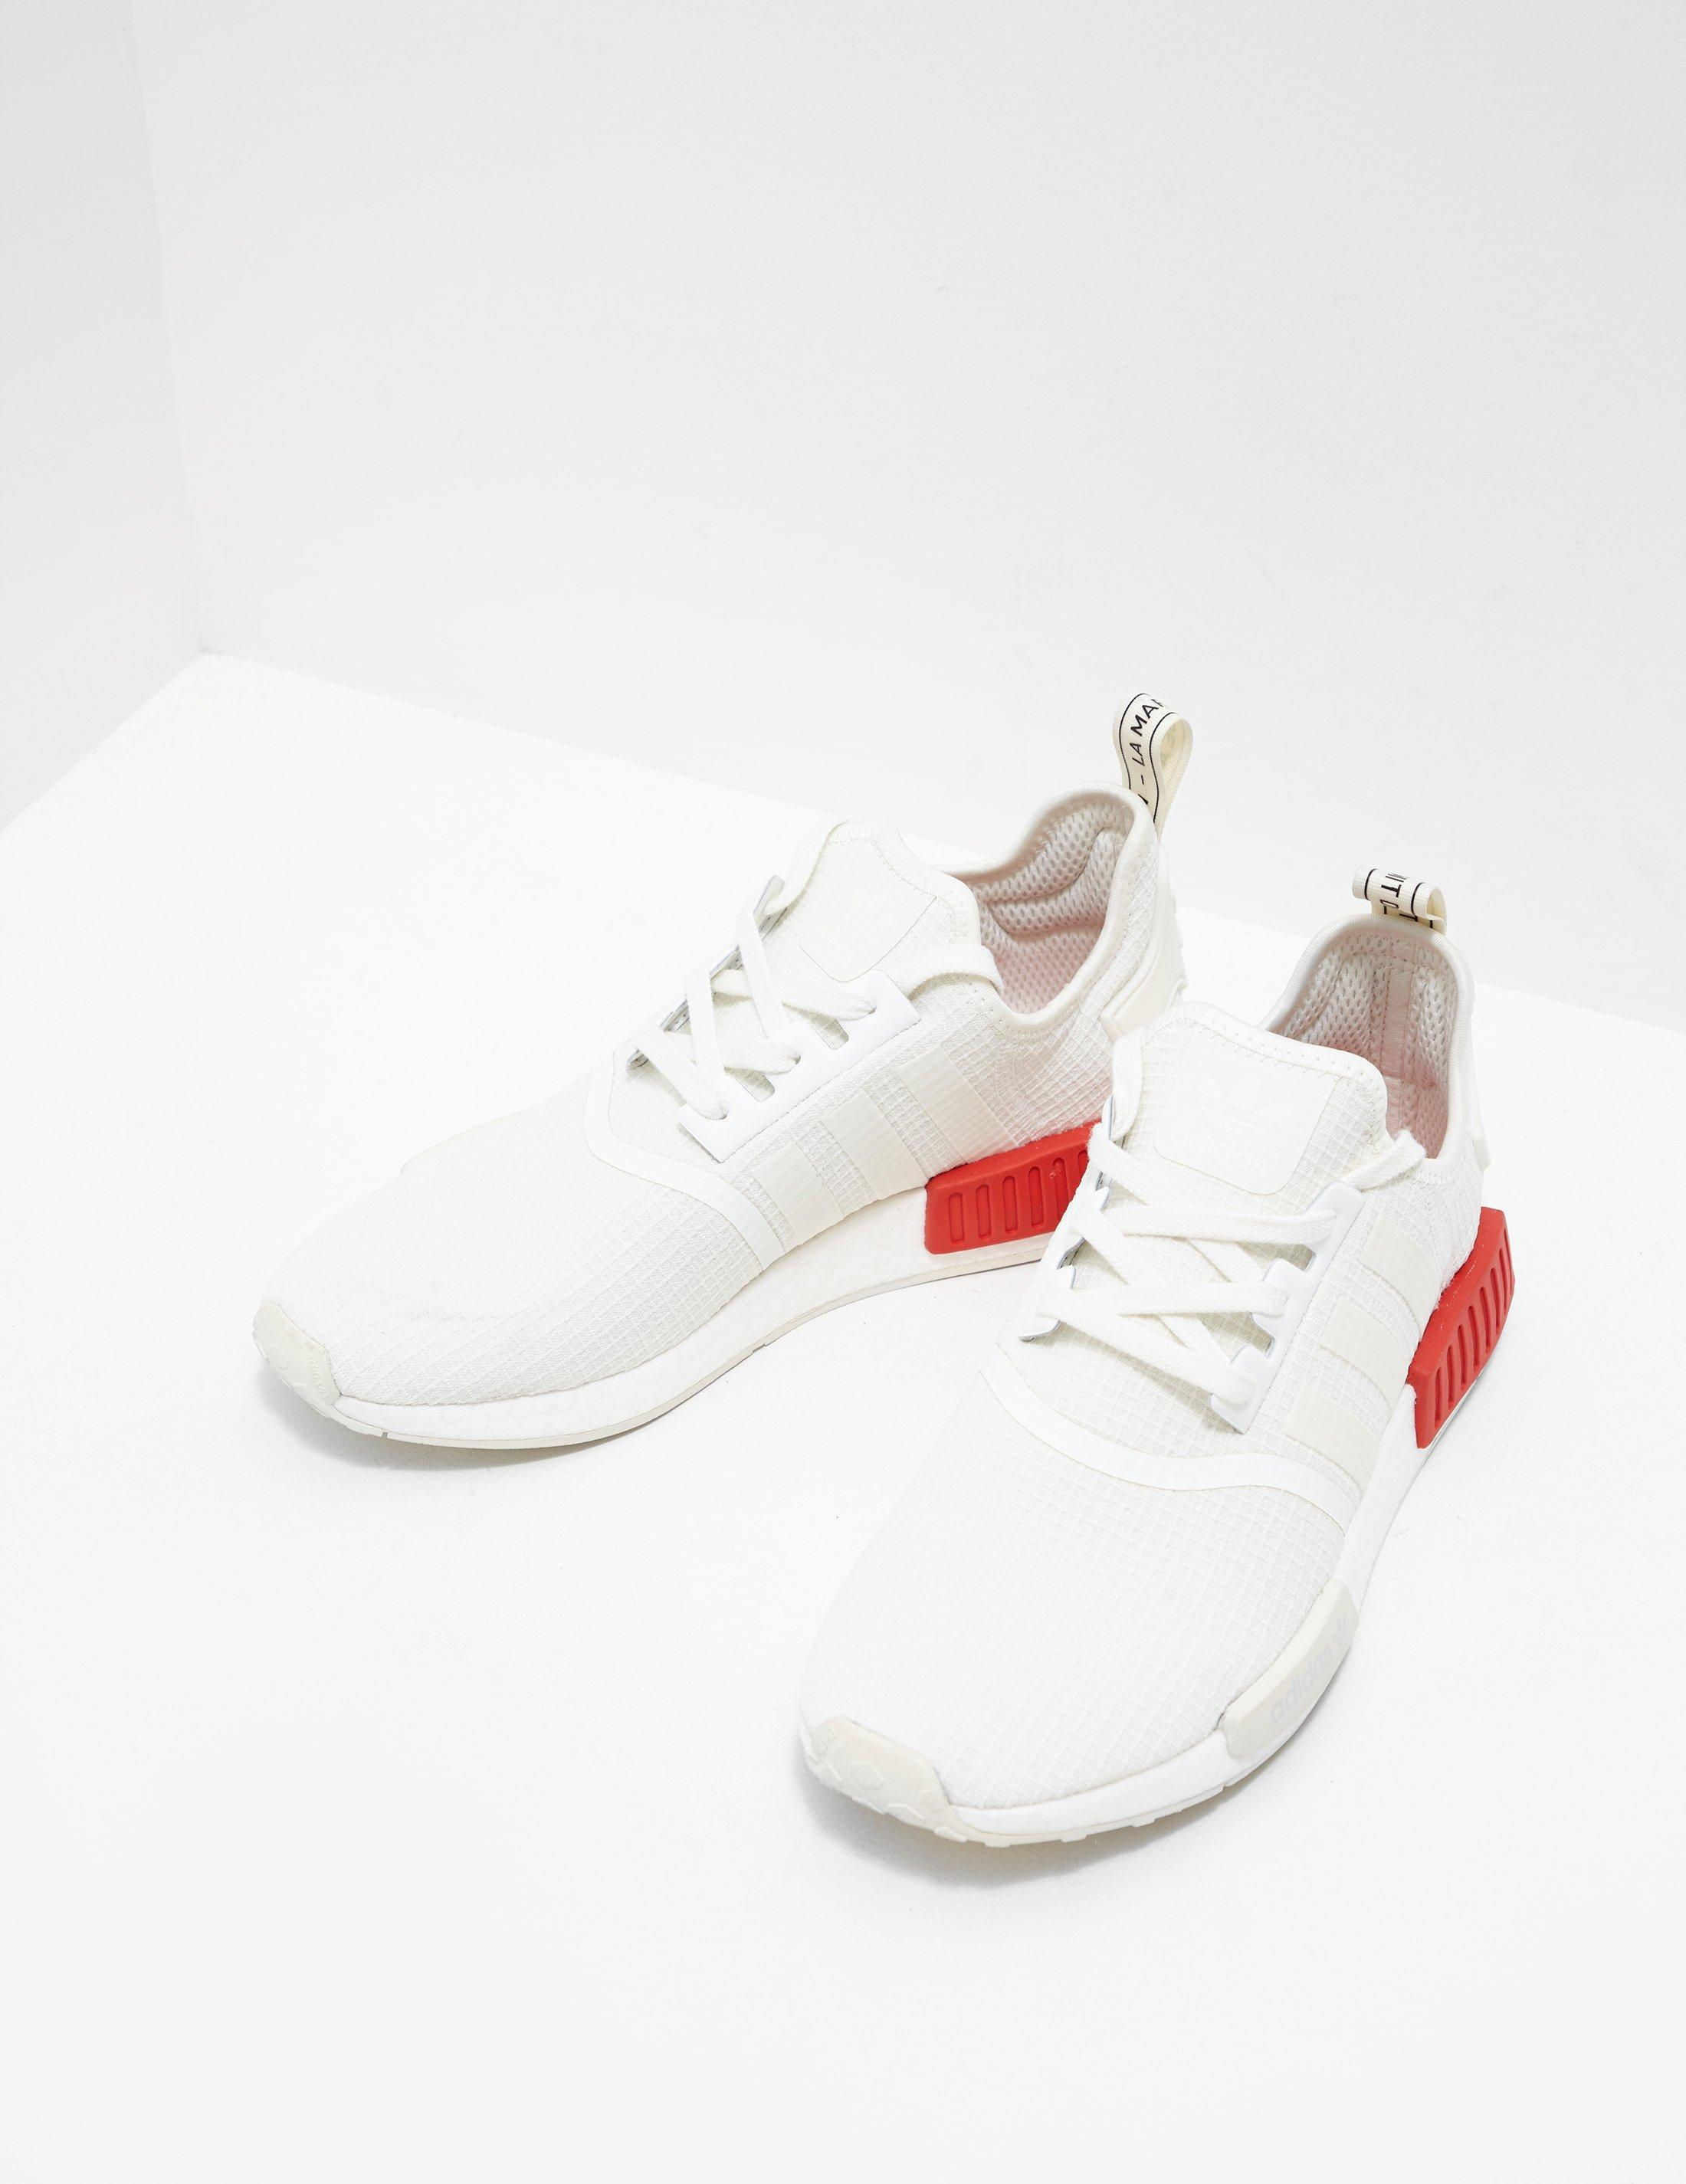 b797400c3 adidas Originals Mens Nmd R1 Ripstop White in White for Men - Lyst